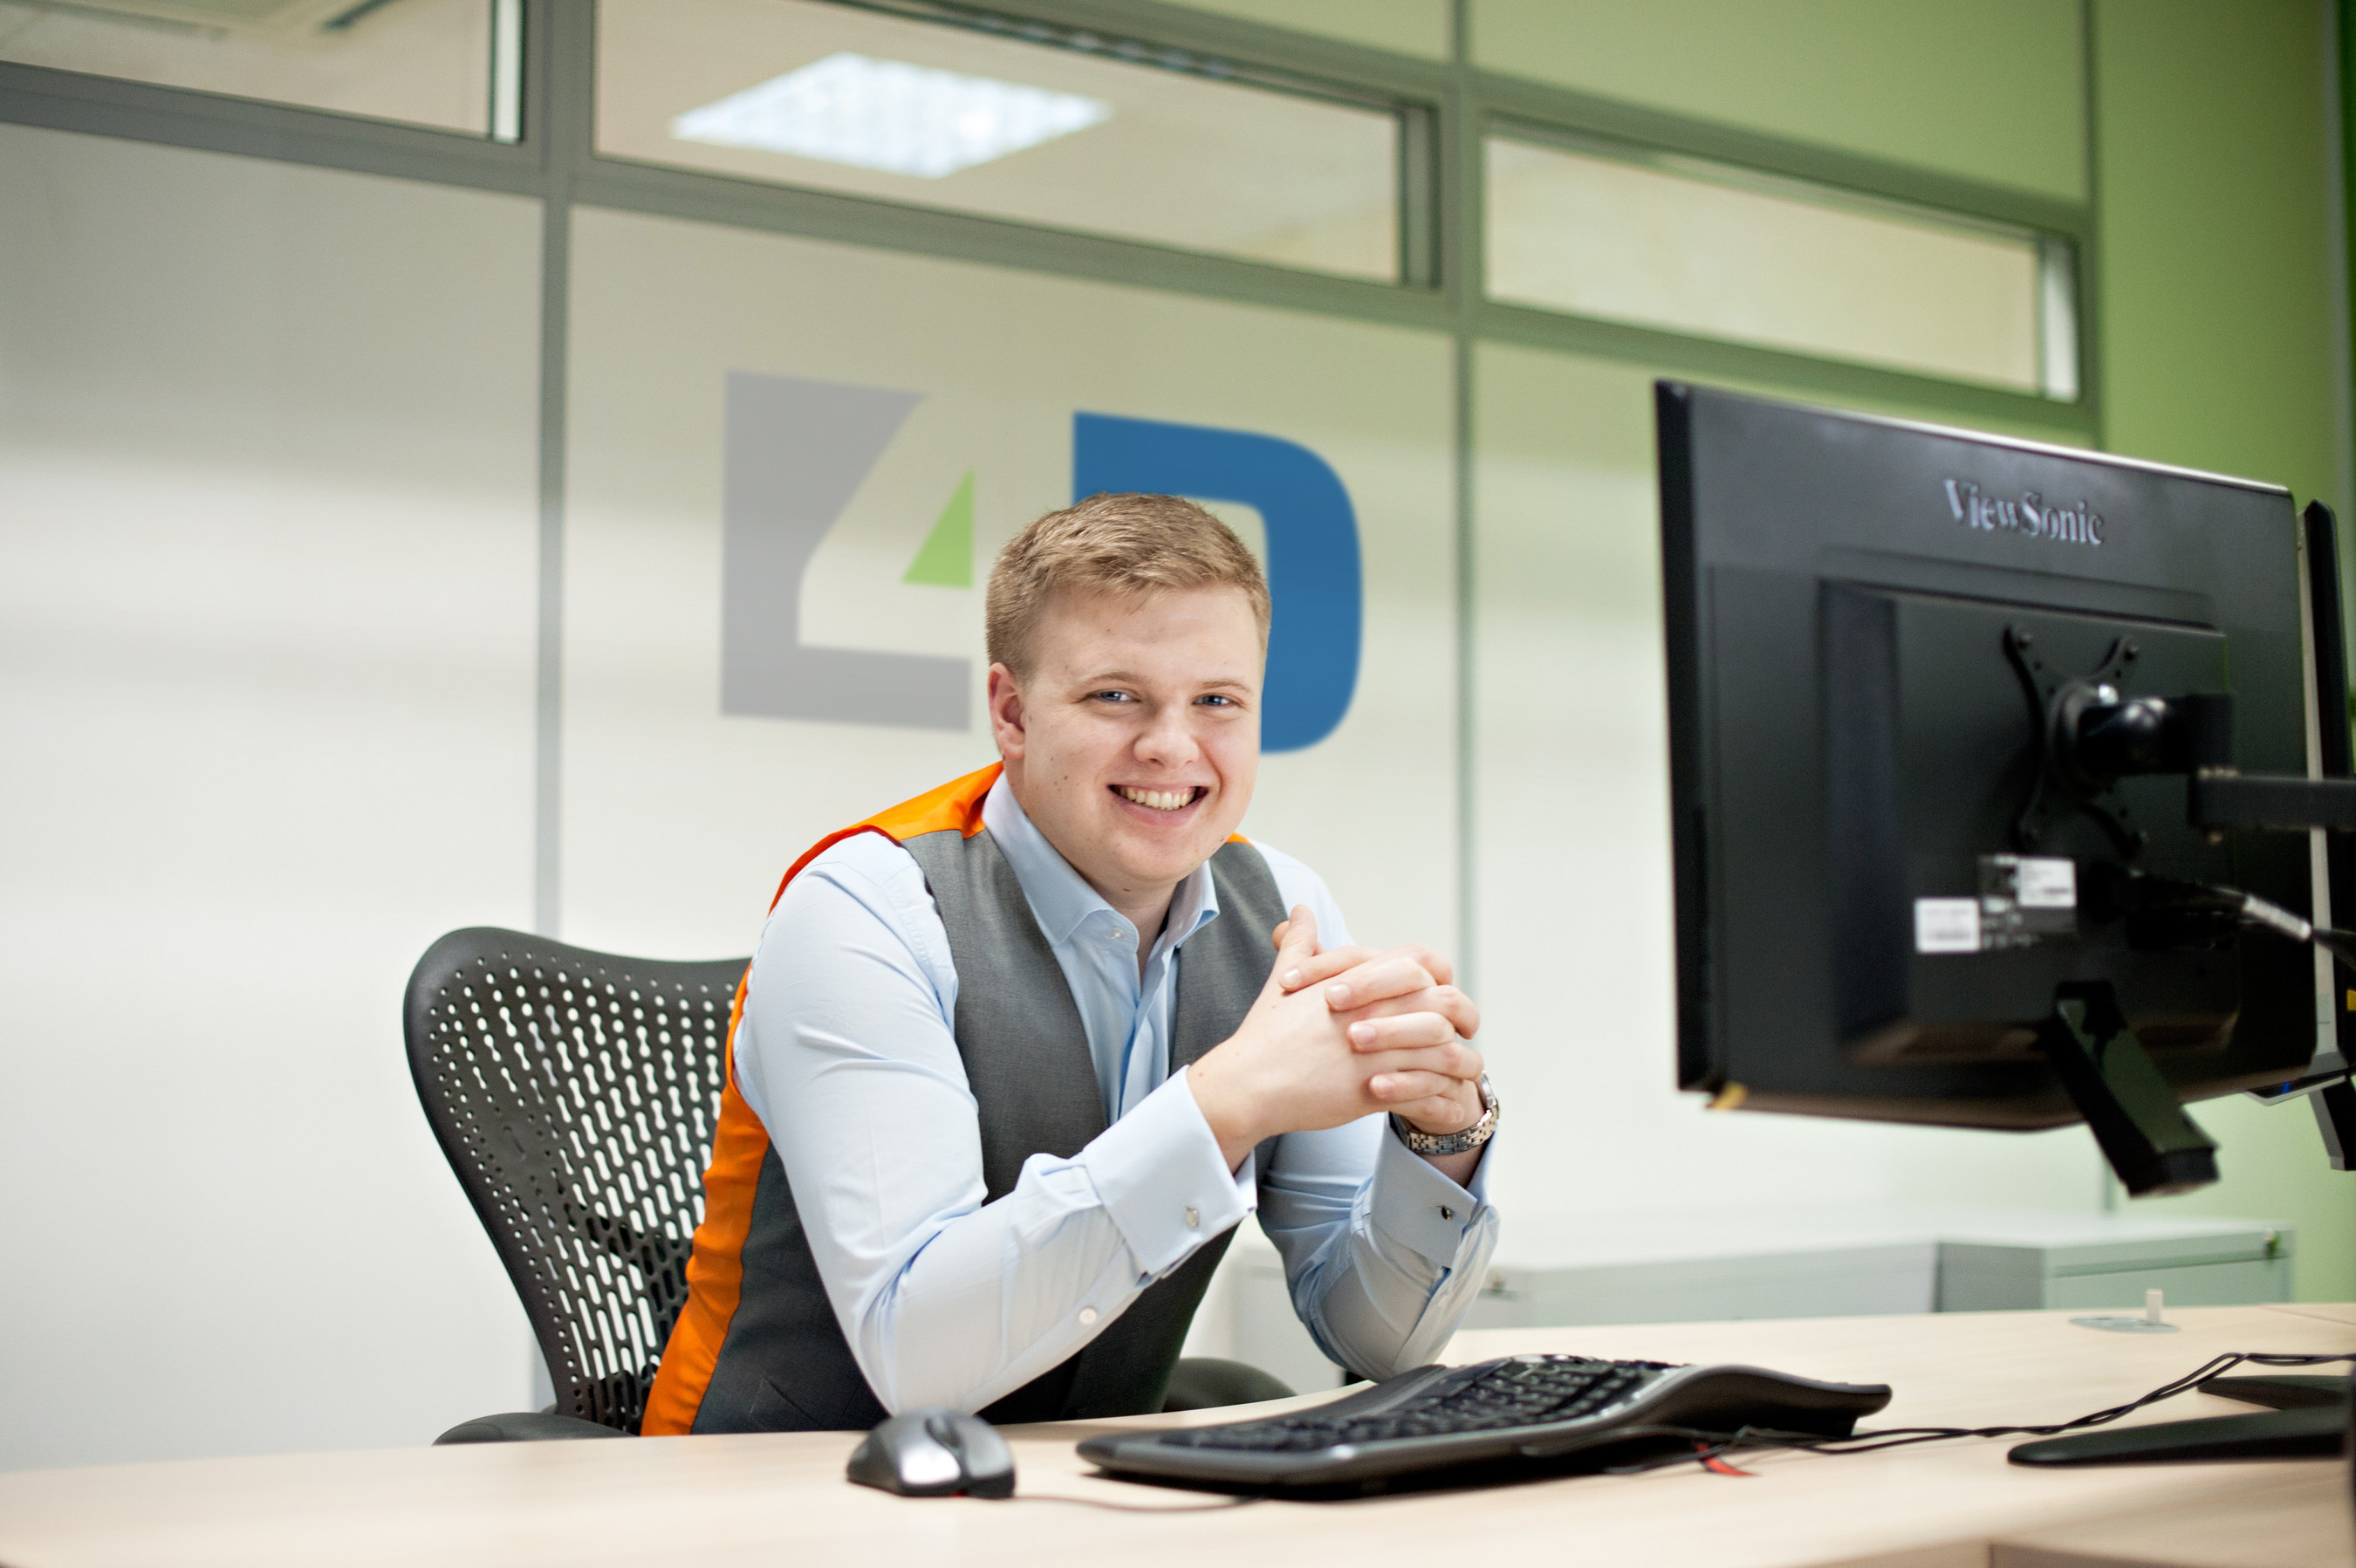 David Barker/ founder and technical director at 4D-DC